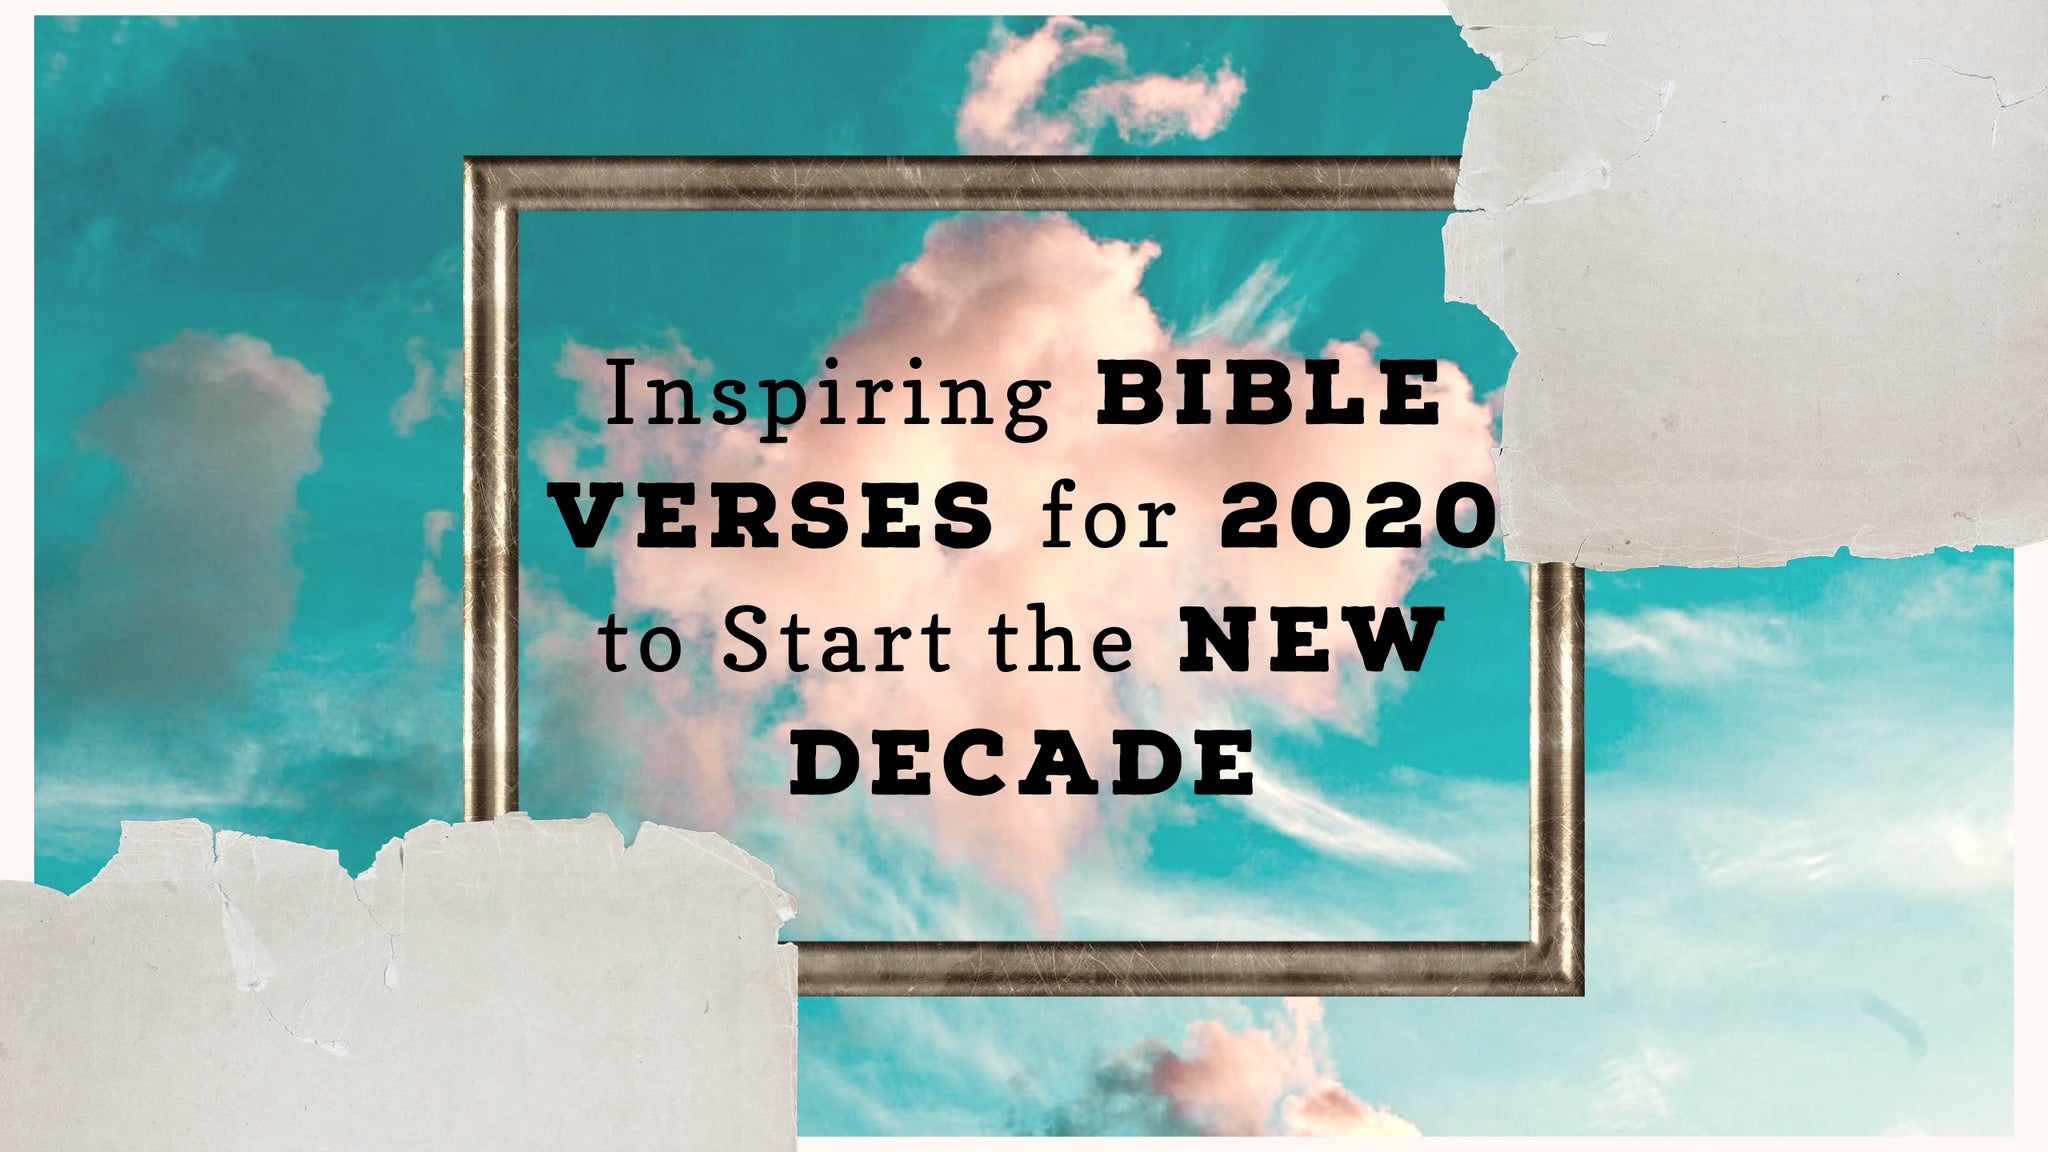 Inspiring Bible Verses for 2020 to Start the New Decade